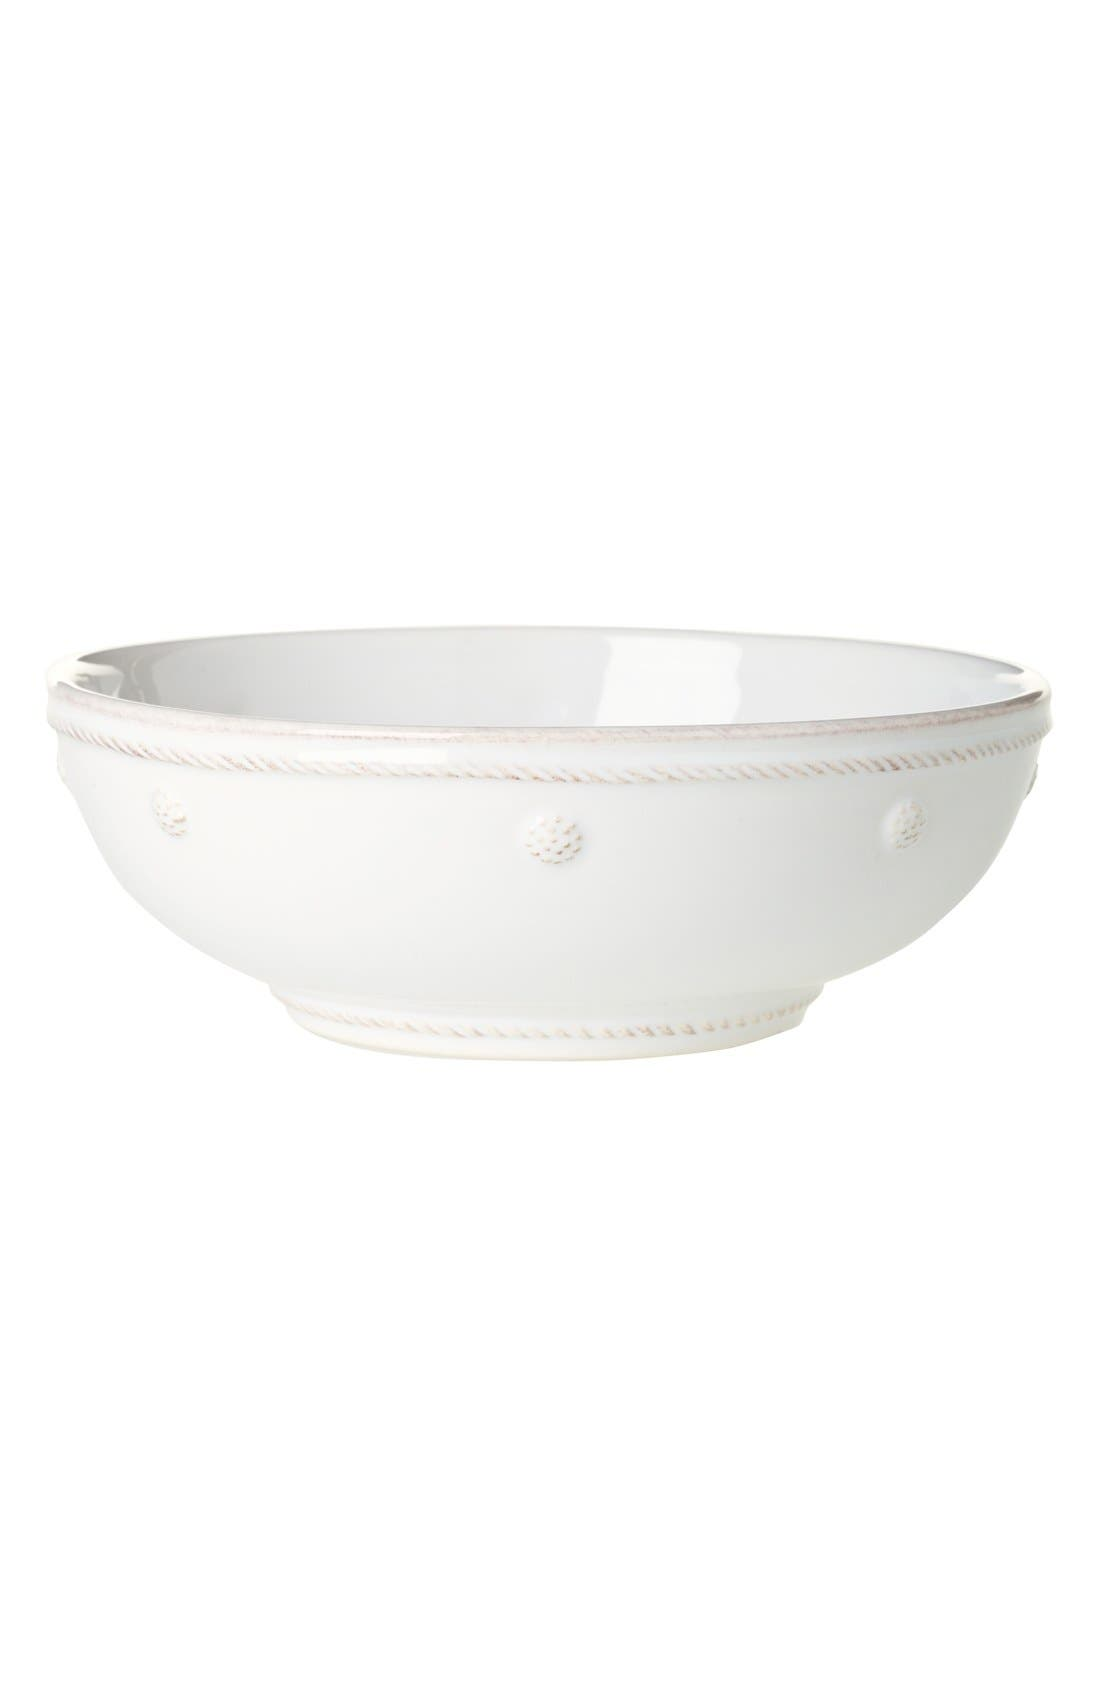 'Berry and Thread' Coupe Pasta Bowl,                         Main,                         color, WHITEWASH